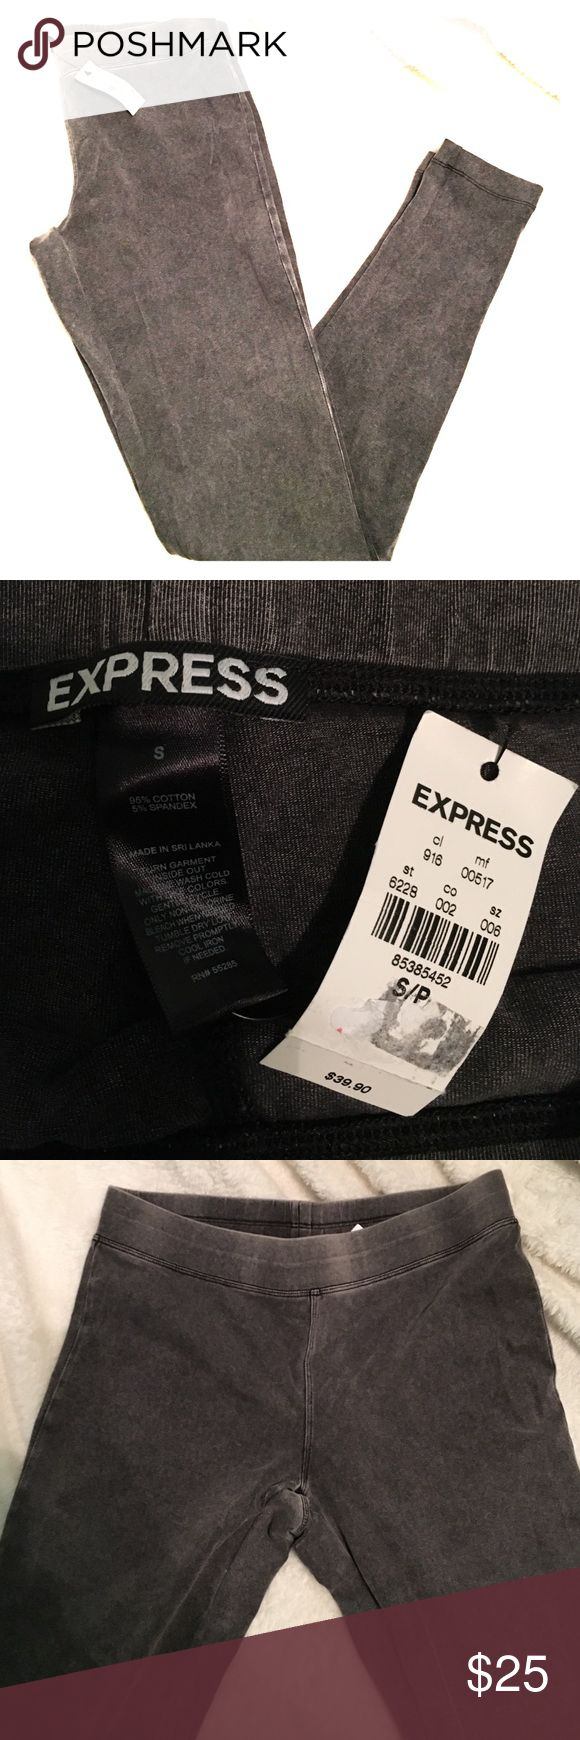 NWT Express gray leggings Elastic waistband : faded gray color : soft material : Brand new : price firm Express Pants Leggings